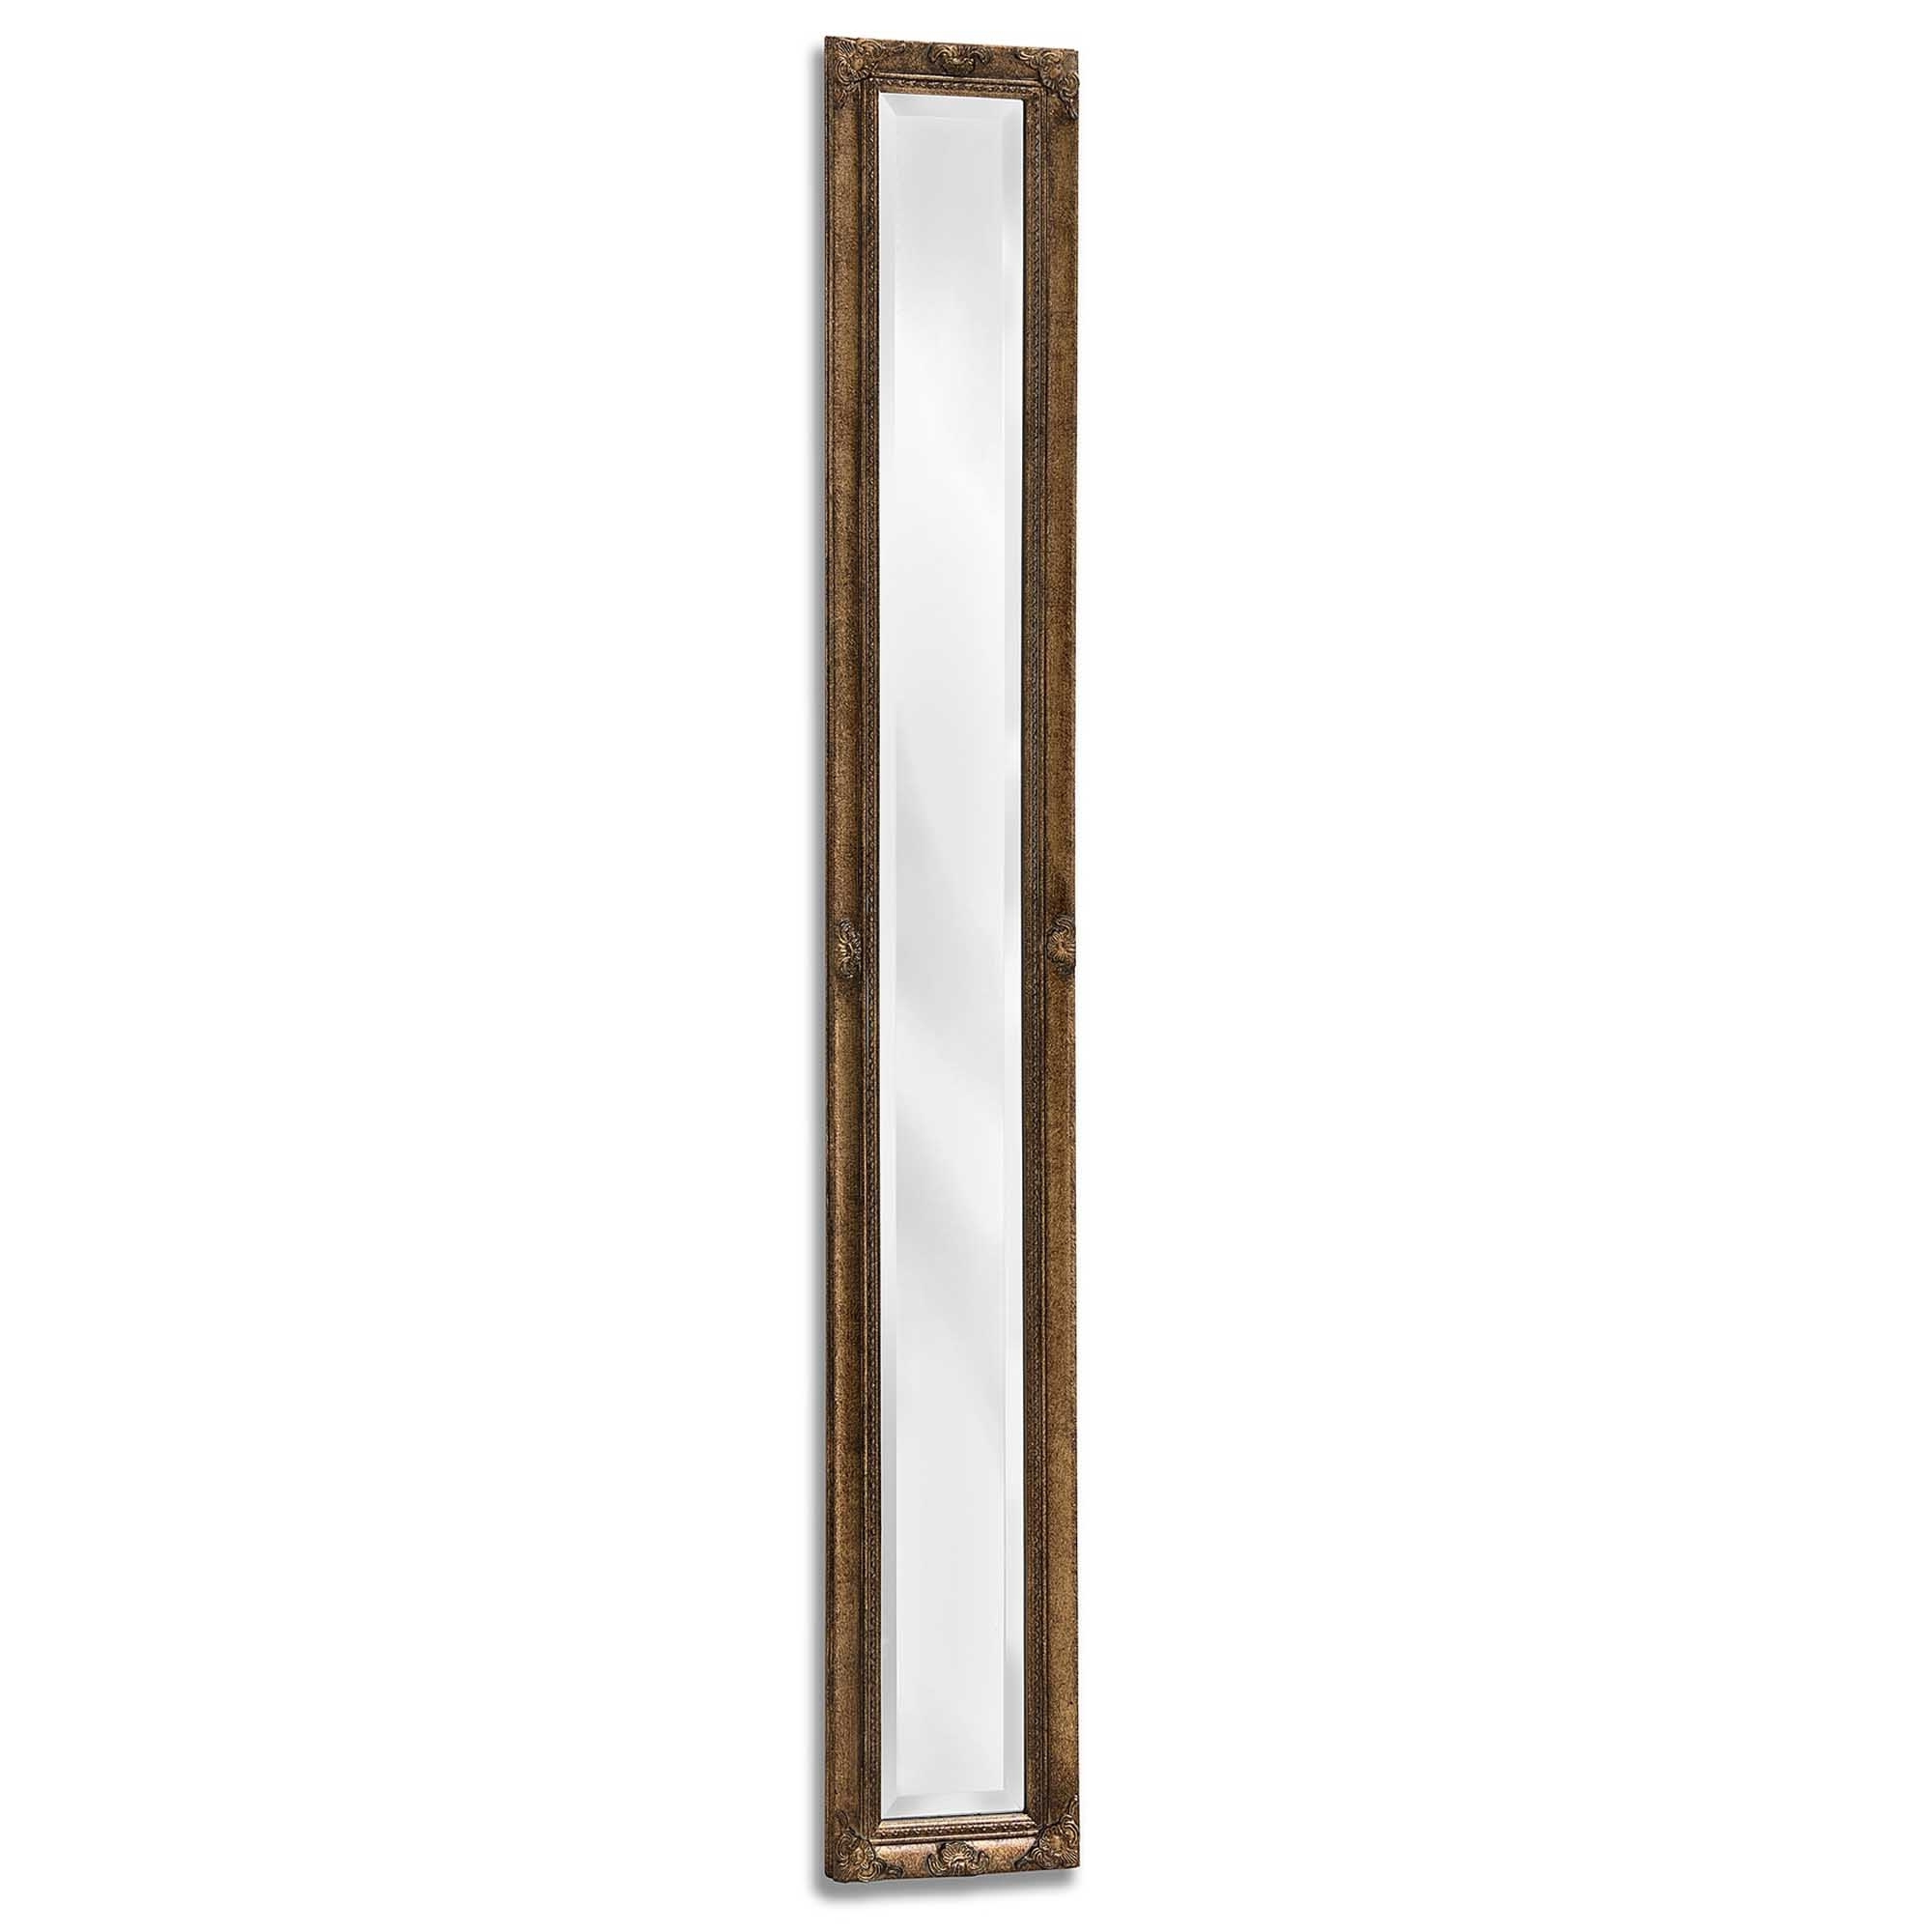 Thin Wall Mirrors Within 2020 Antique French Style Gold Narrow Wall Mirror (View 15 of 20)